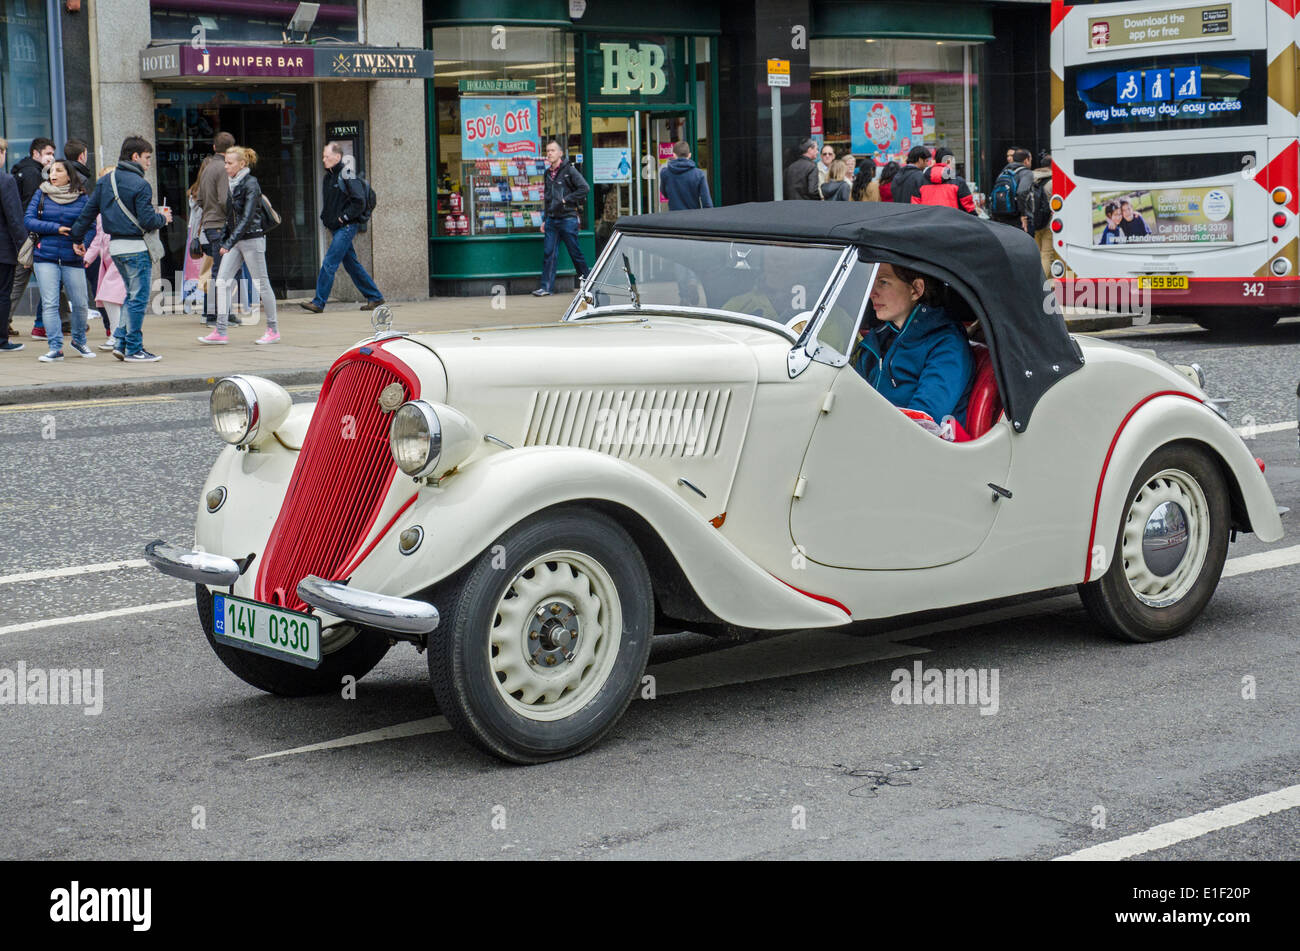 A two-seater convertible sportcar made by Škoda being driven along Princes Street in the centre of Edinburgh, Scotland, UK. - Stock Image